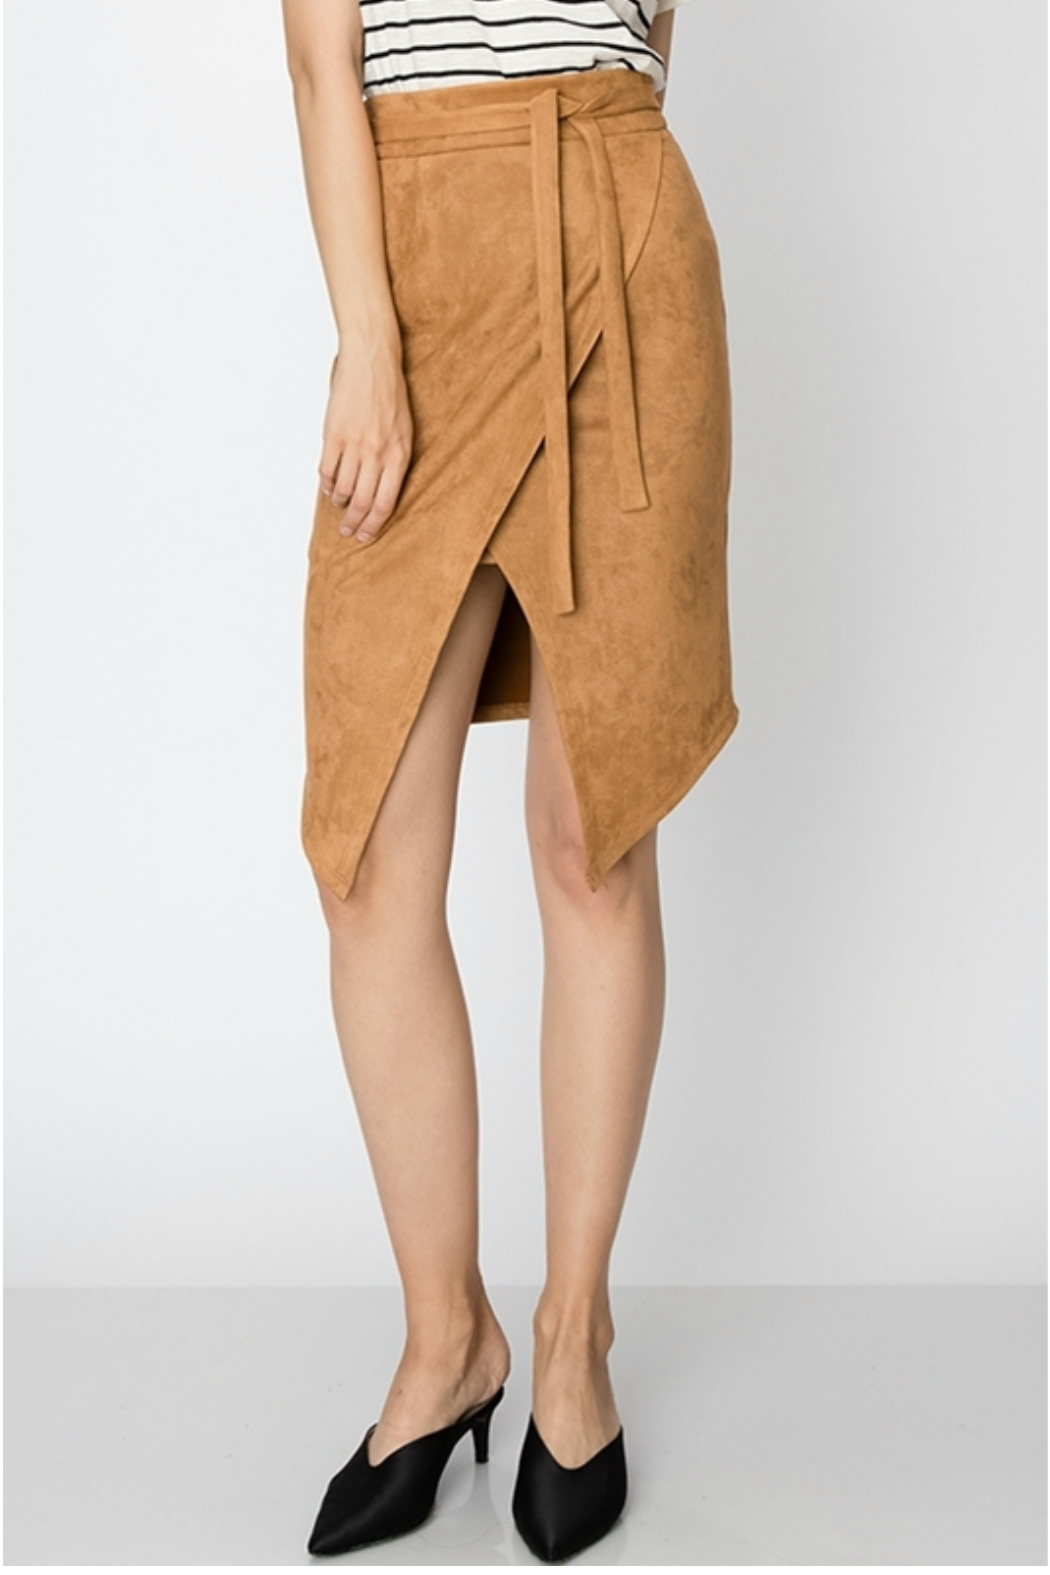 HYFVE SUEDE SKIRT WITH WAIST TIE AND FRONT SLIT - Main Image